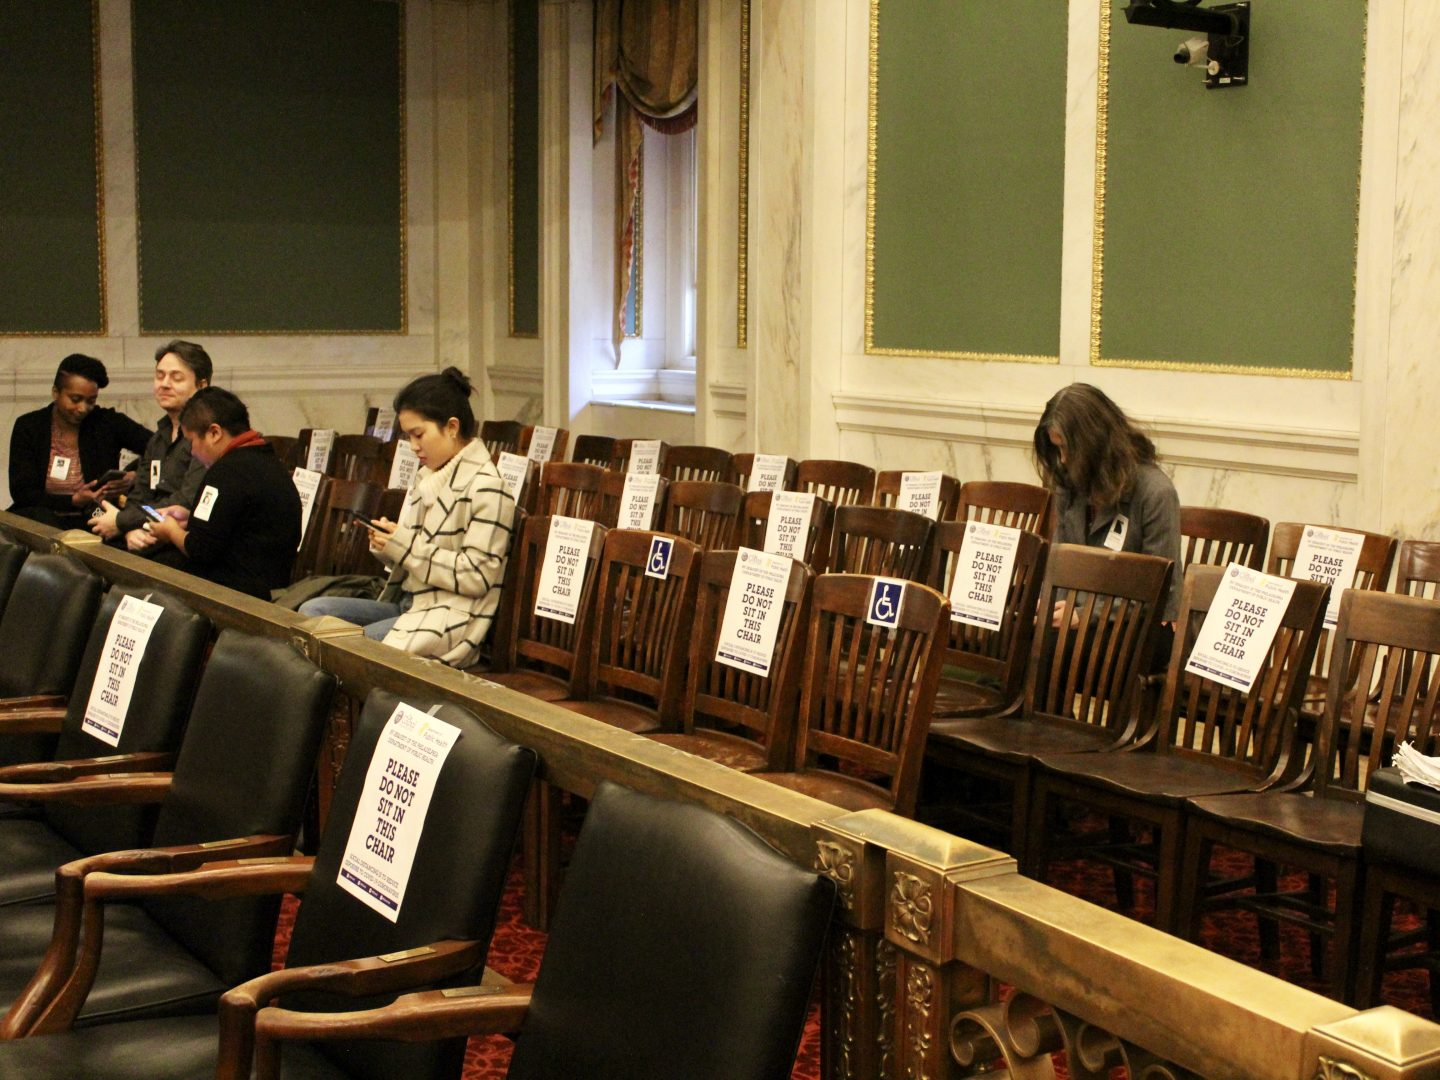 Five people sit in the audience section of city council. Every other chair is blocked.